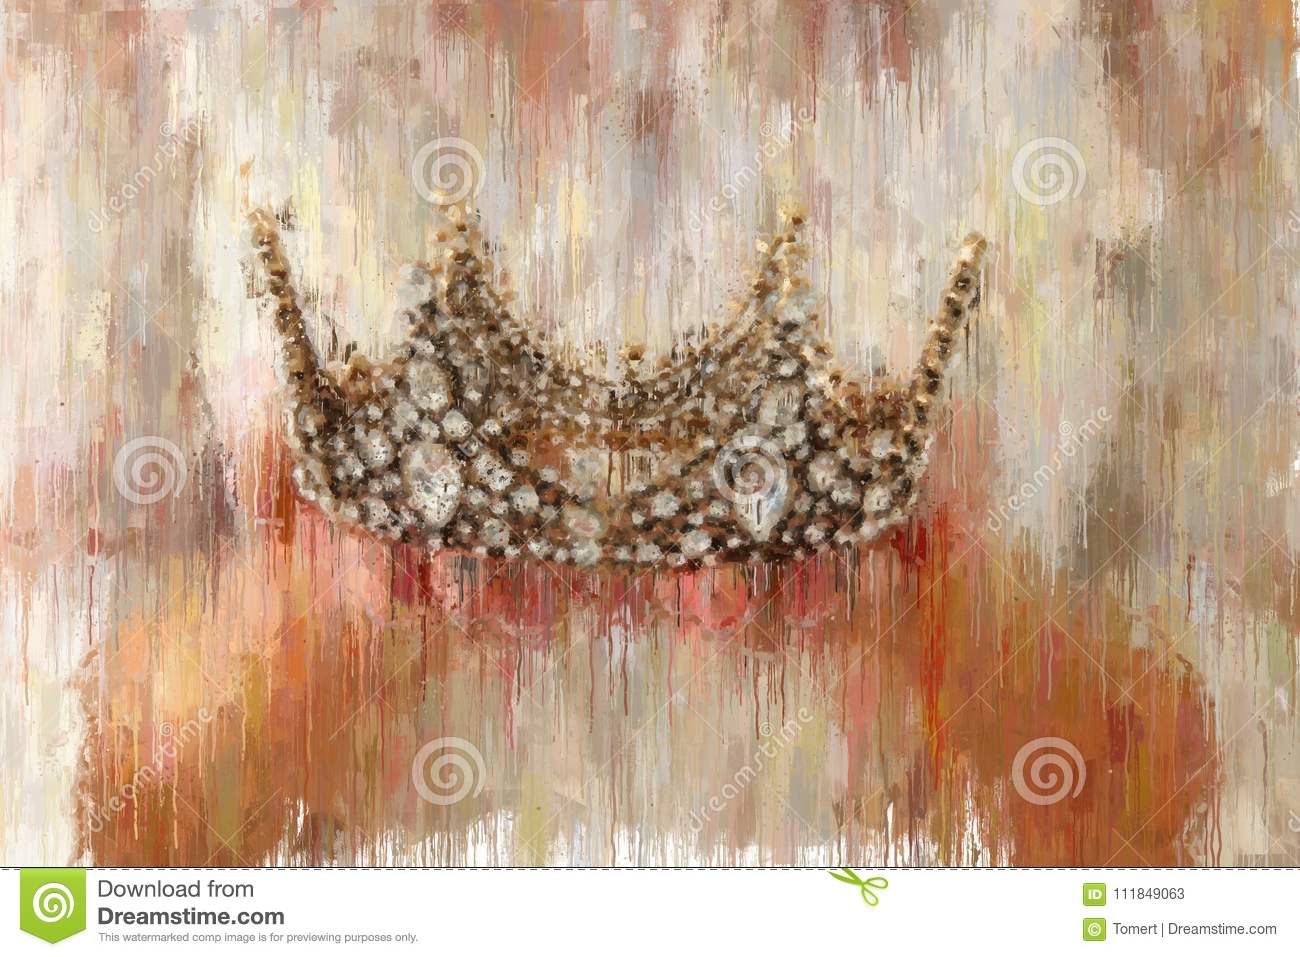 oil painting style abstract image of lady with white dress holding gold crown. fantasy medieval period.